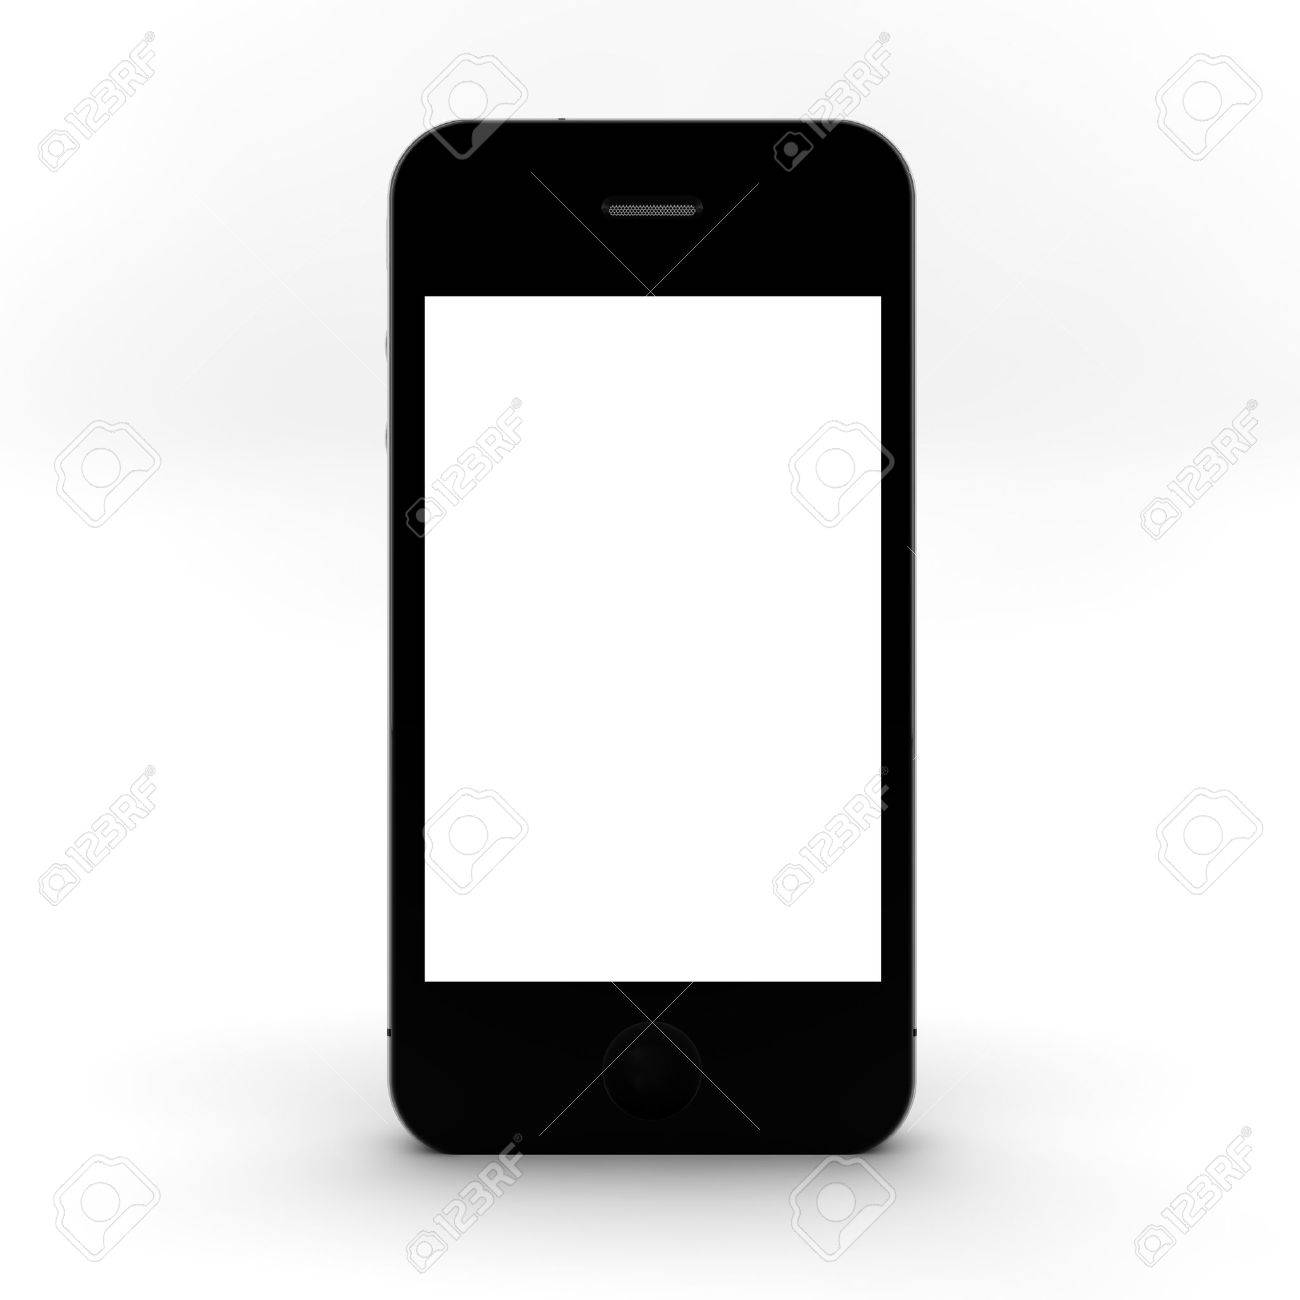 Mobile phone with blank screen for copy space Stock Photo - 10545345